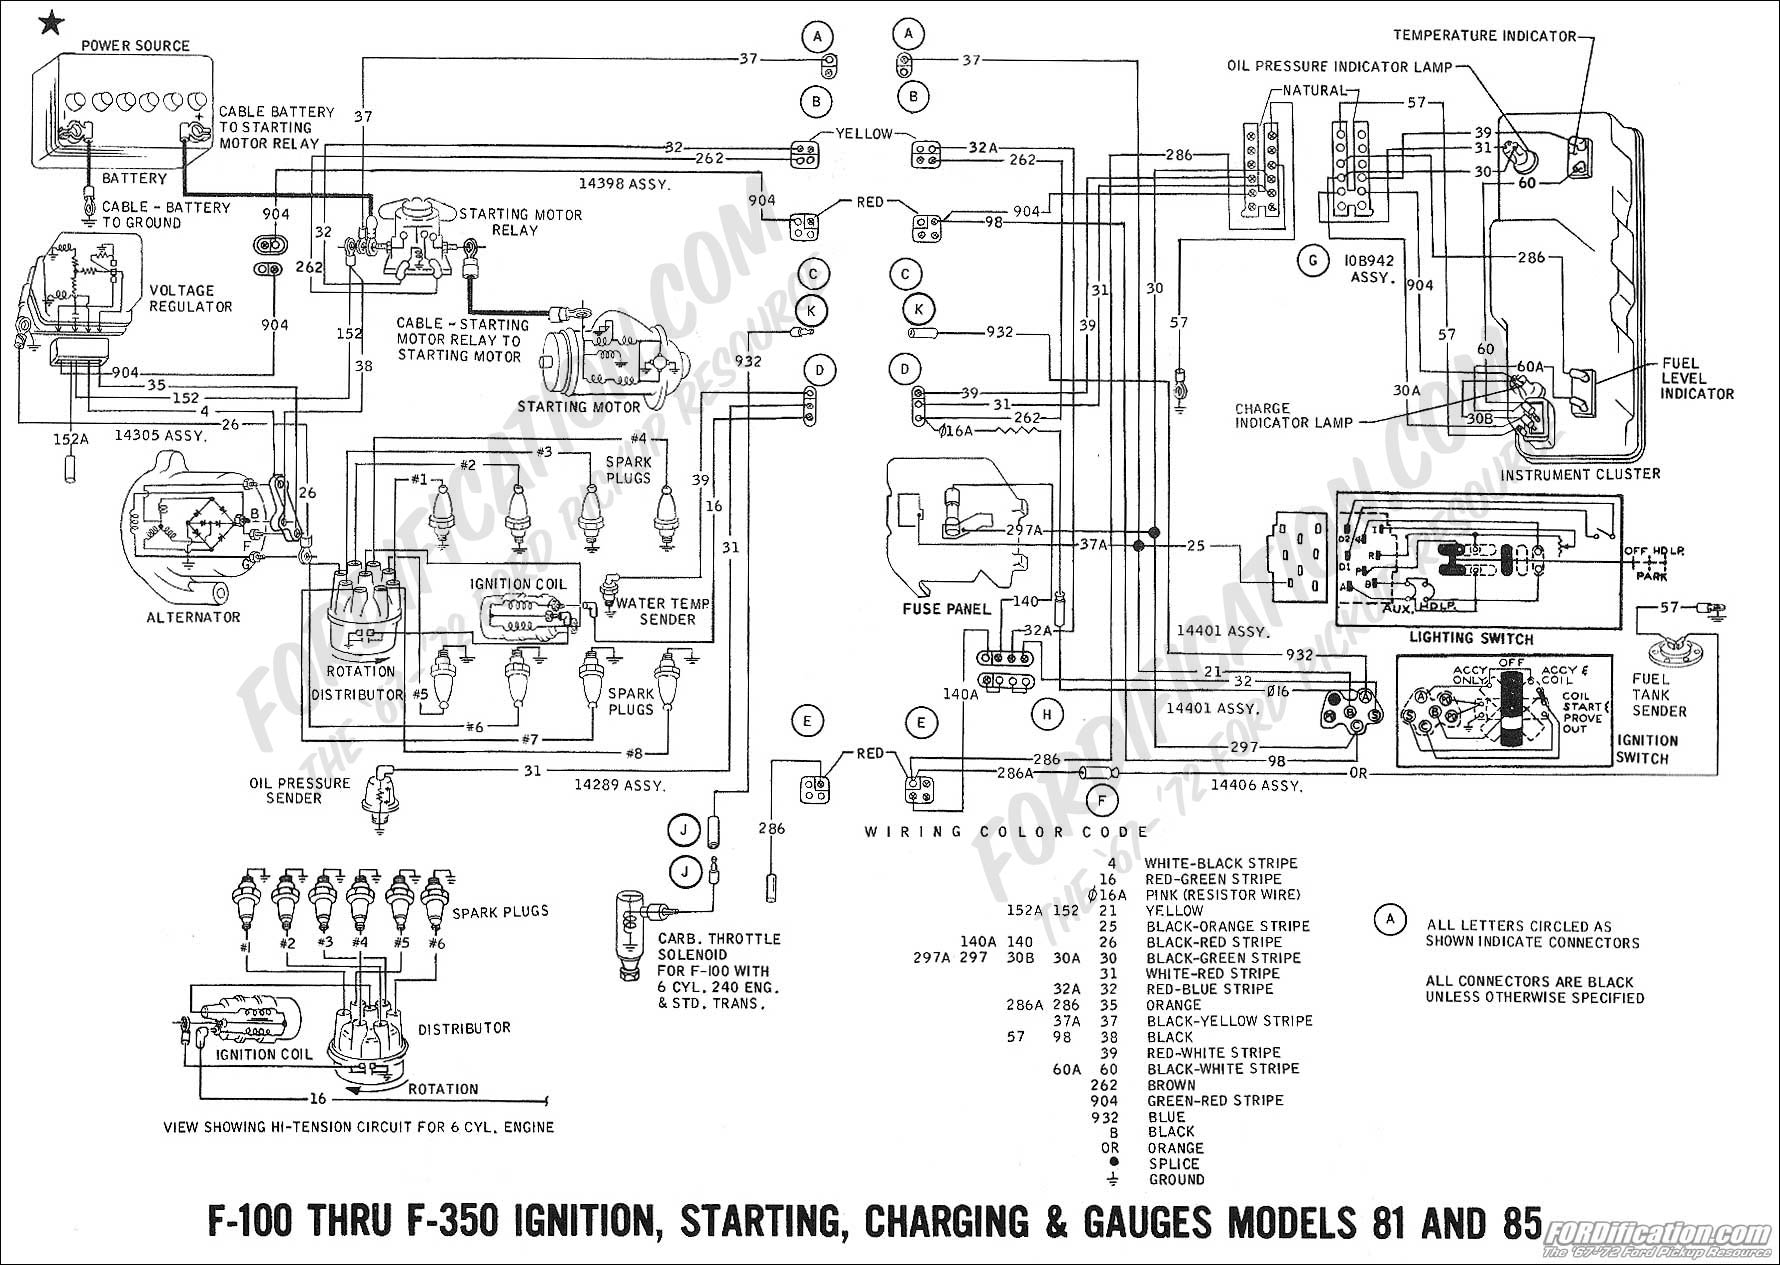 hight resolution of 1979 ford ltd wiring diagram wiring diagrams scematic 89 chevy wiring diagram 76 ford ltd ignition wiring diagram